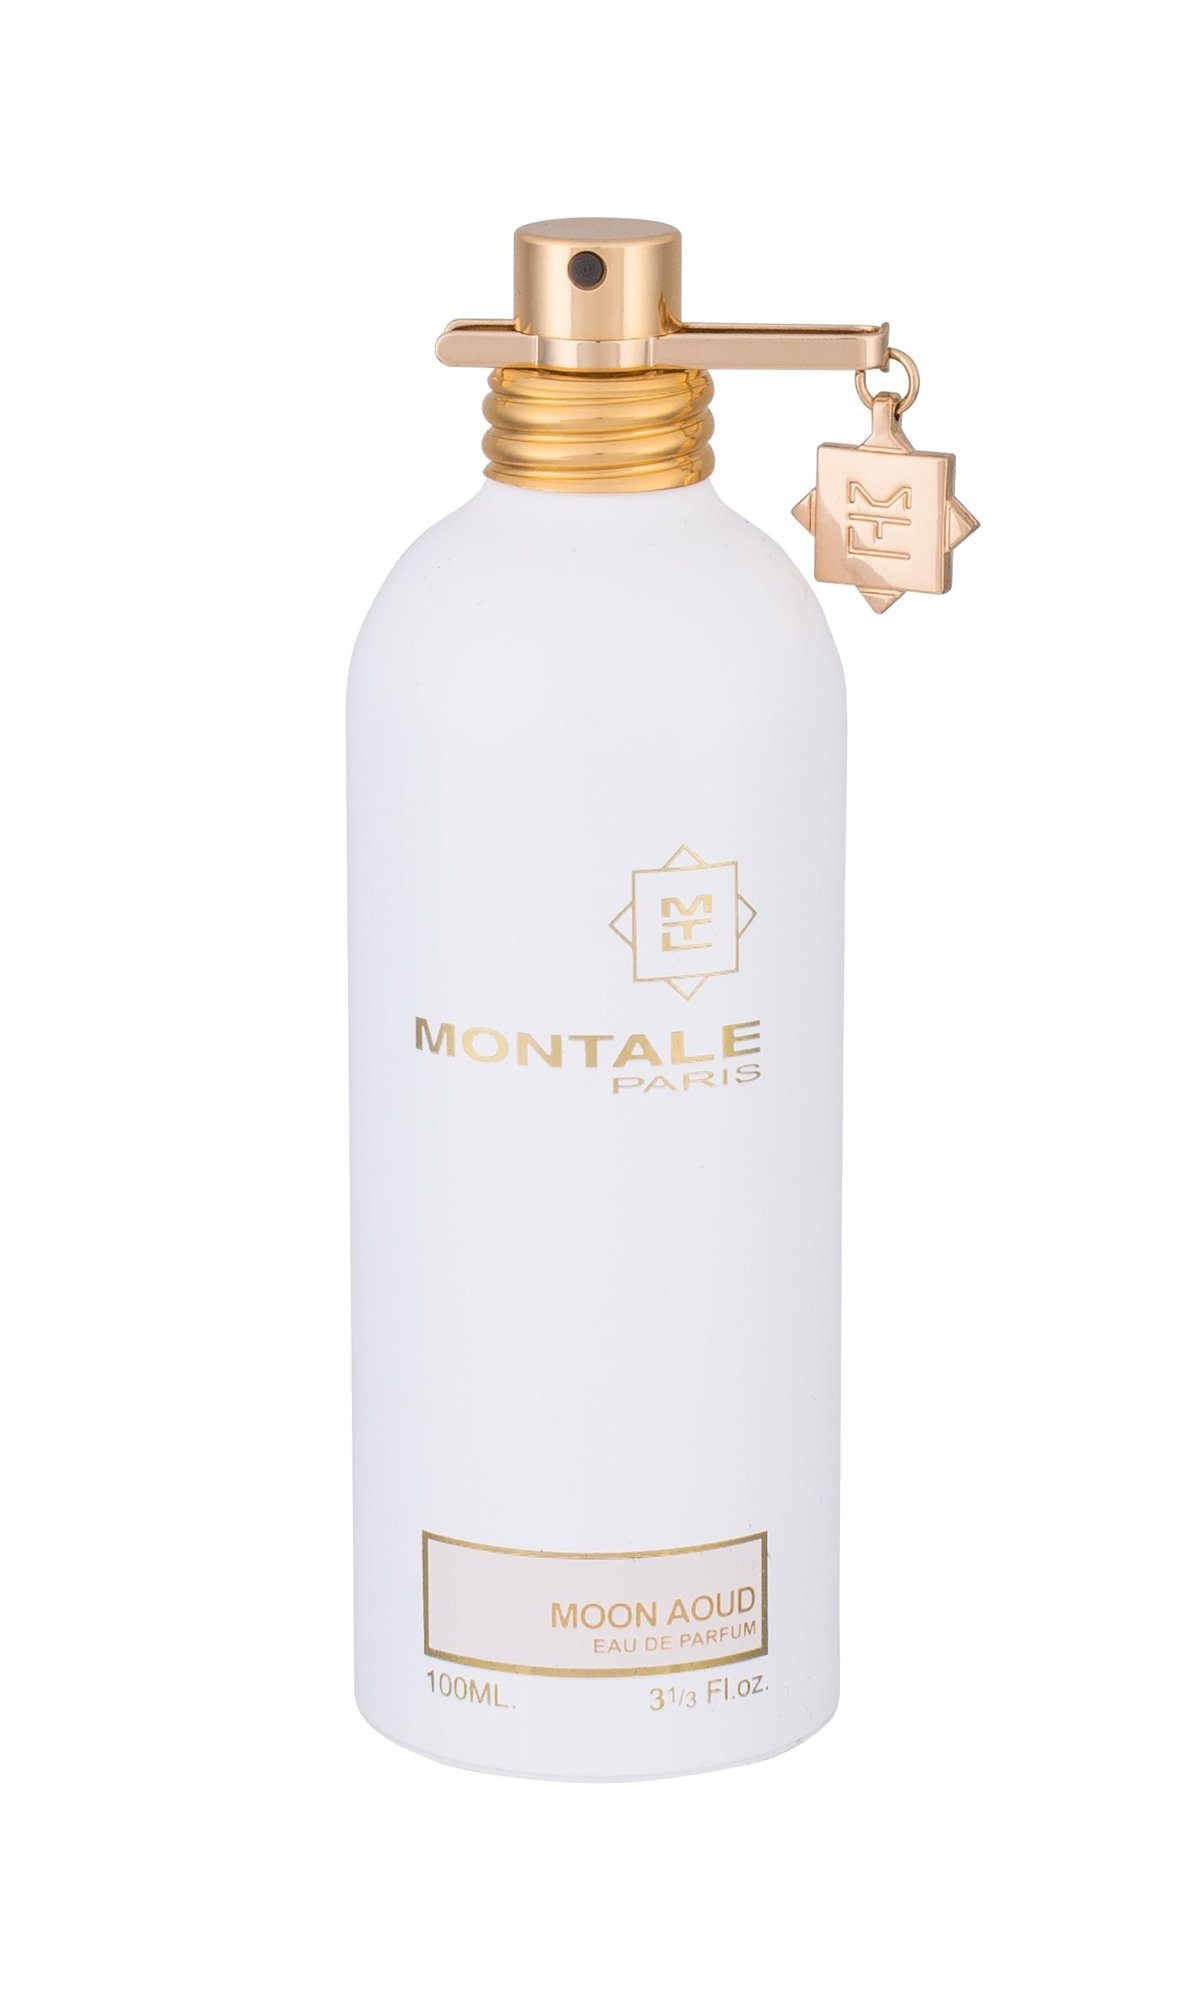 Montale Paris Moon Aoud EDP 100ml